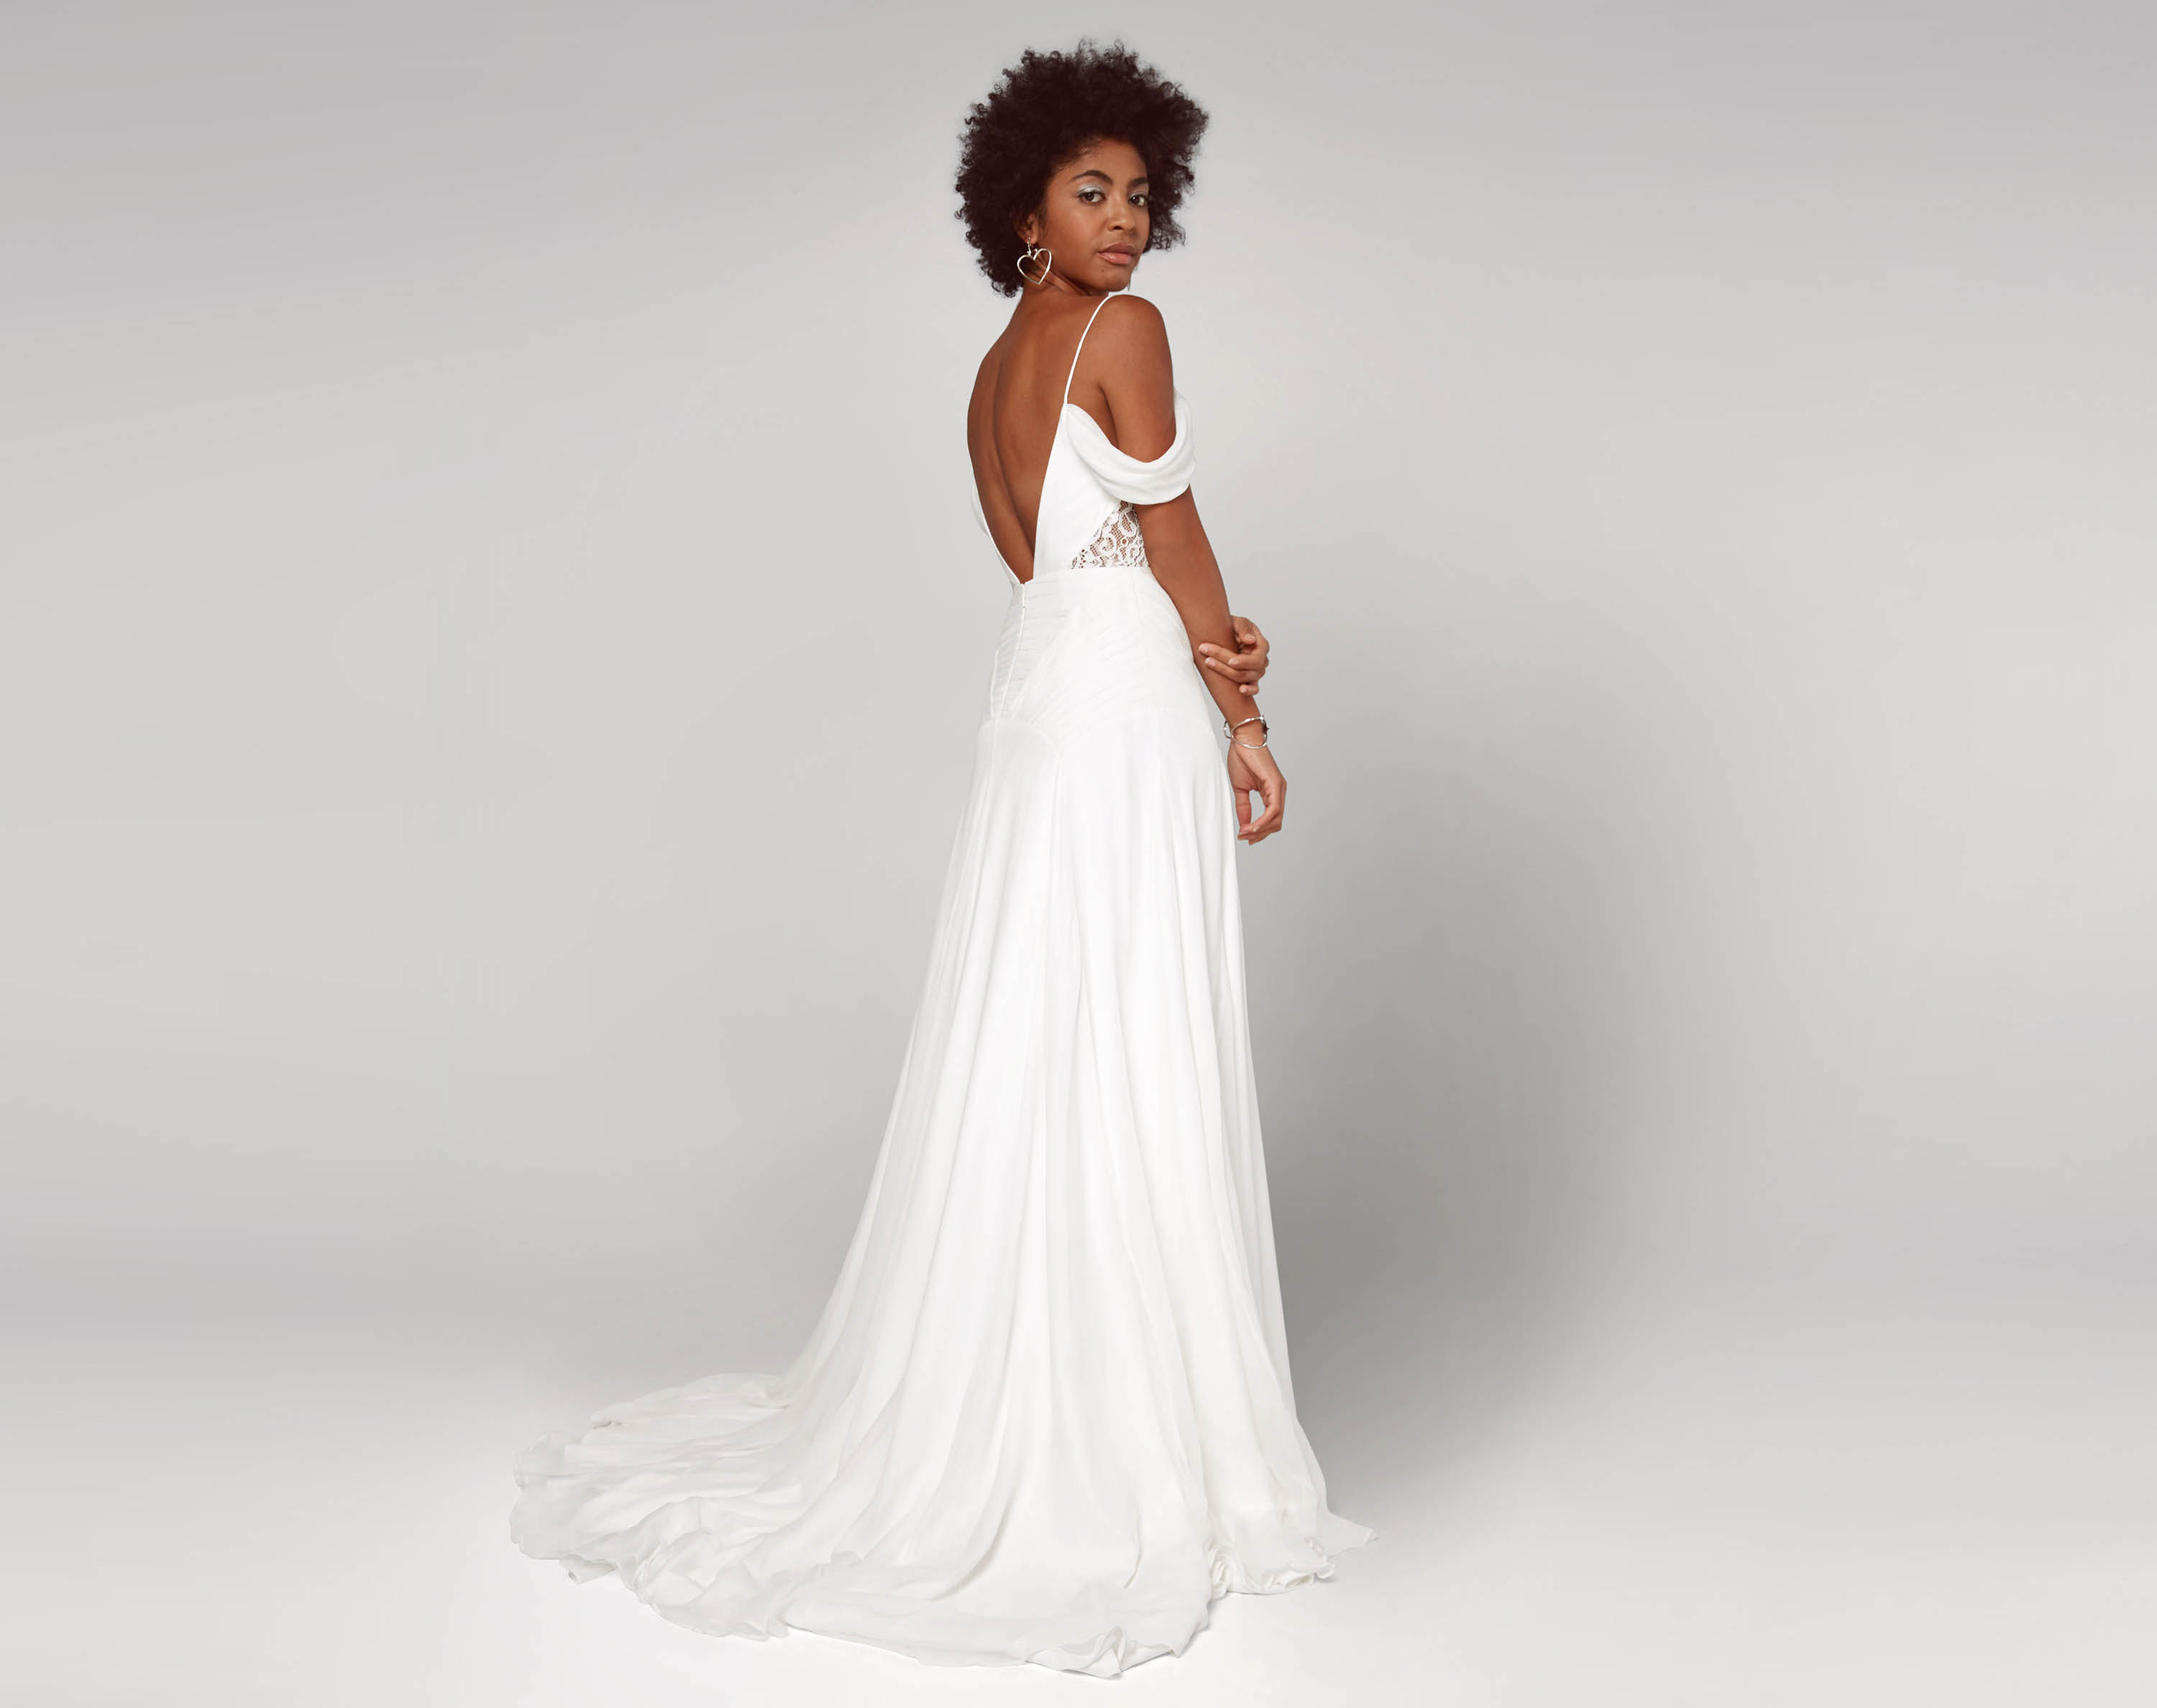 cheap wedding dresses fame partners bridal gorgeous wedding dresses A model wearing a white wedding gown with an open back thin straps and